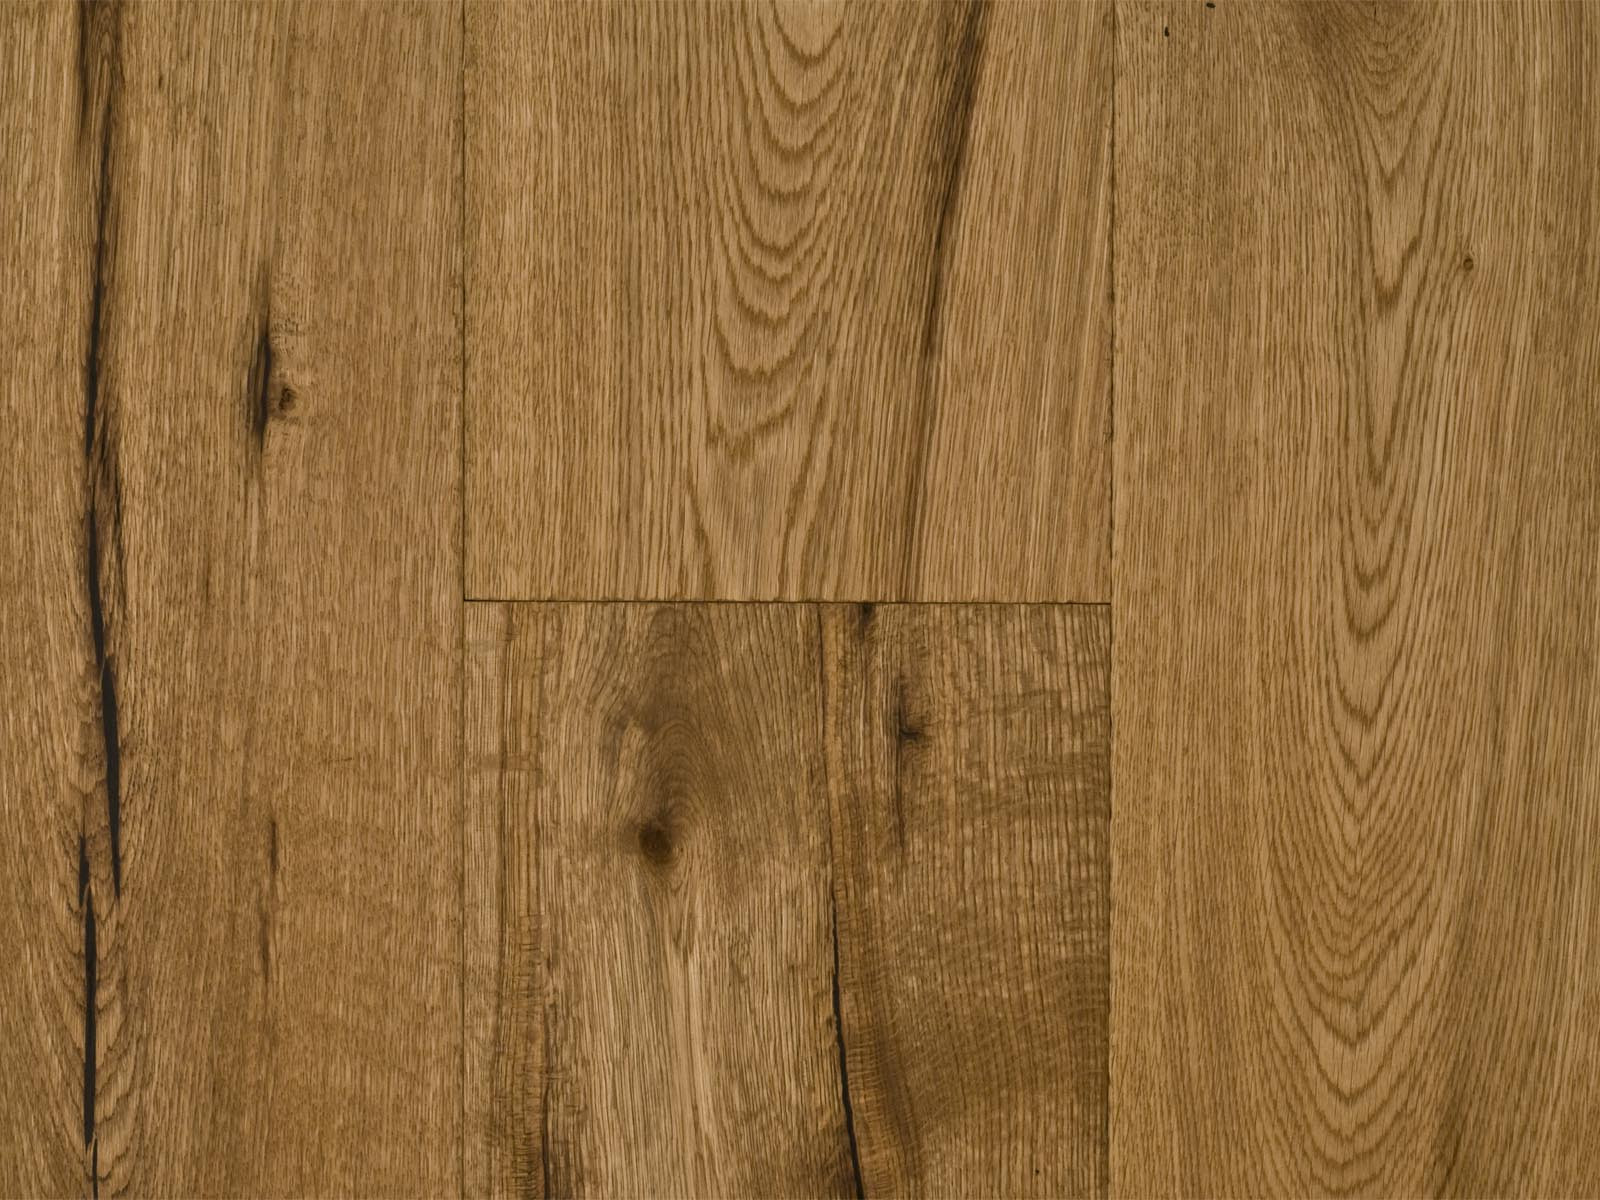 bruce maple hardwood flooring reviews of duchateau hardwood flooring houston tx discount engineered wood within natural european oak